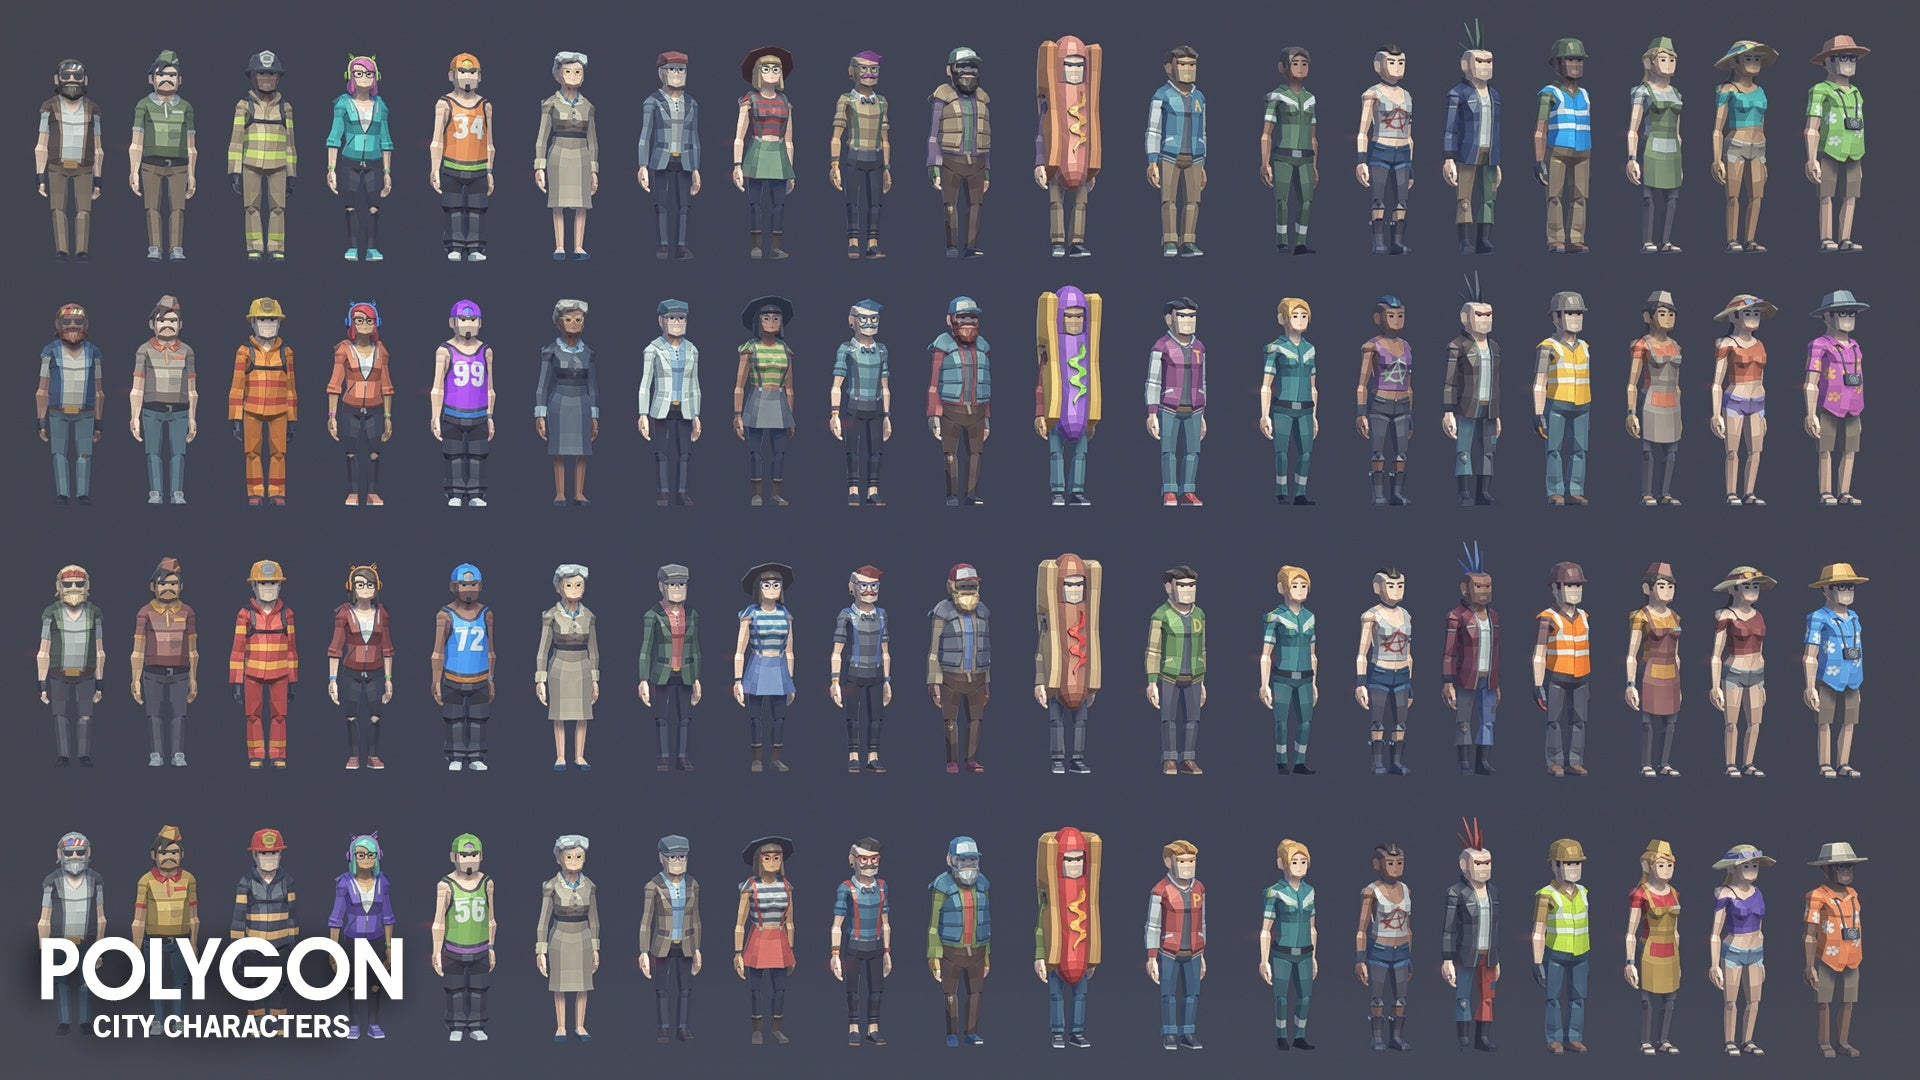 Unity Asset] POLYGON - City Characters | Board4All